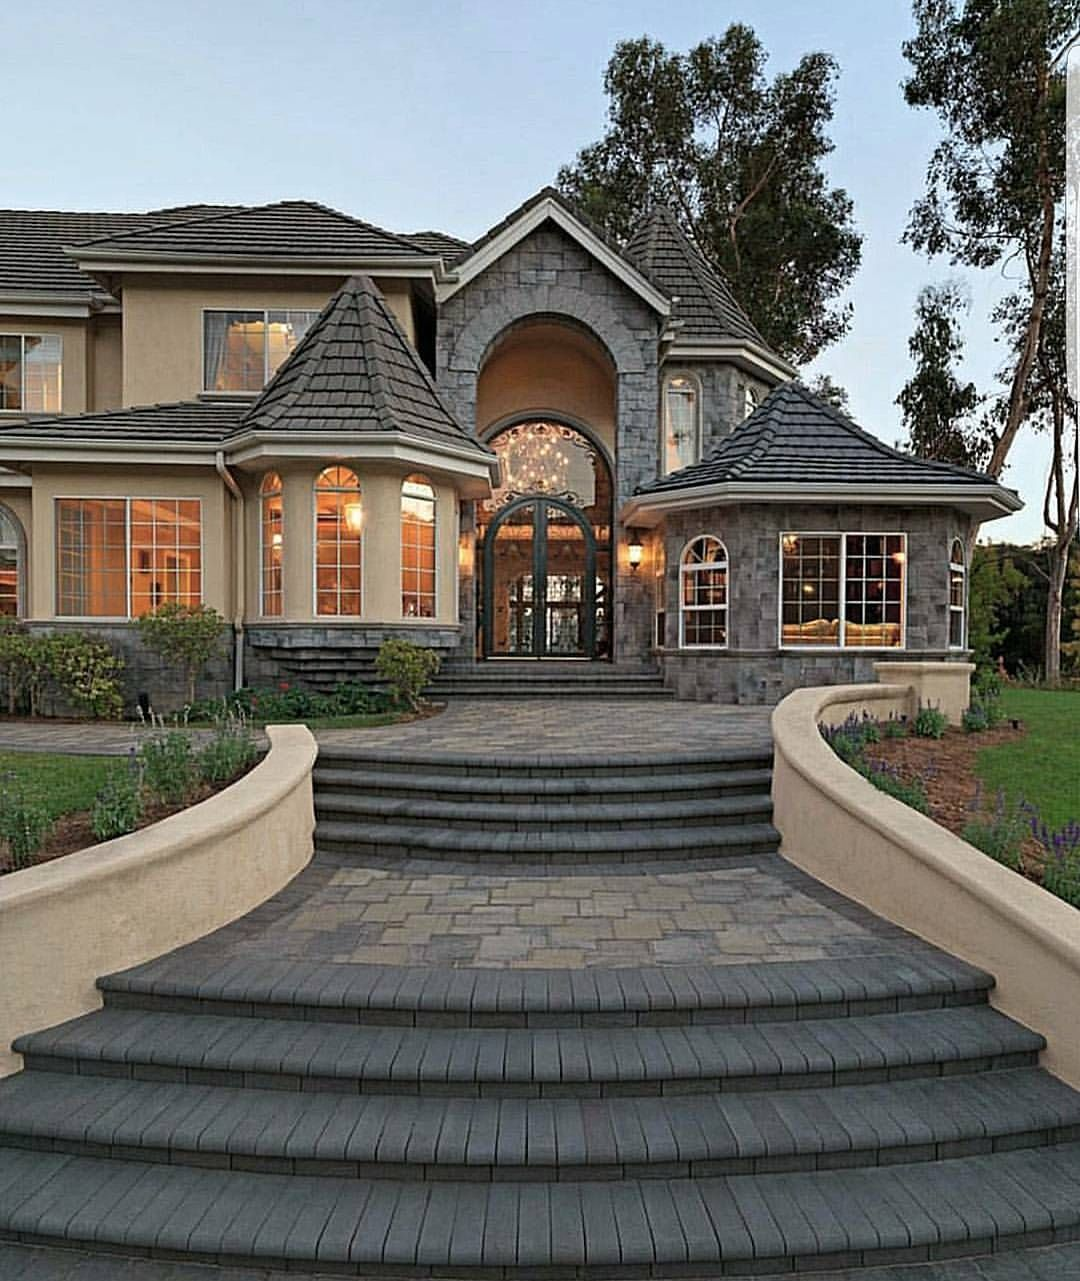 Pin By Nora Mhaouch On Dream Houses: Pin By Ta' Kara Gaines On Dream Home In 2019